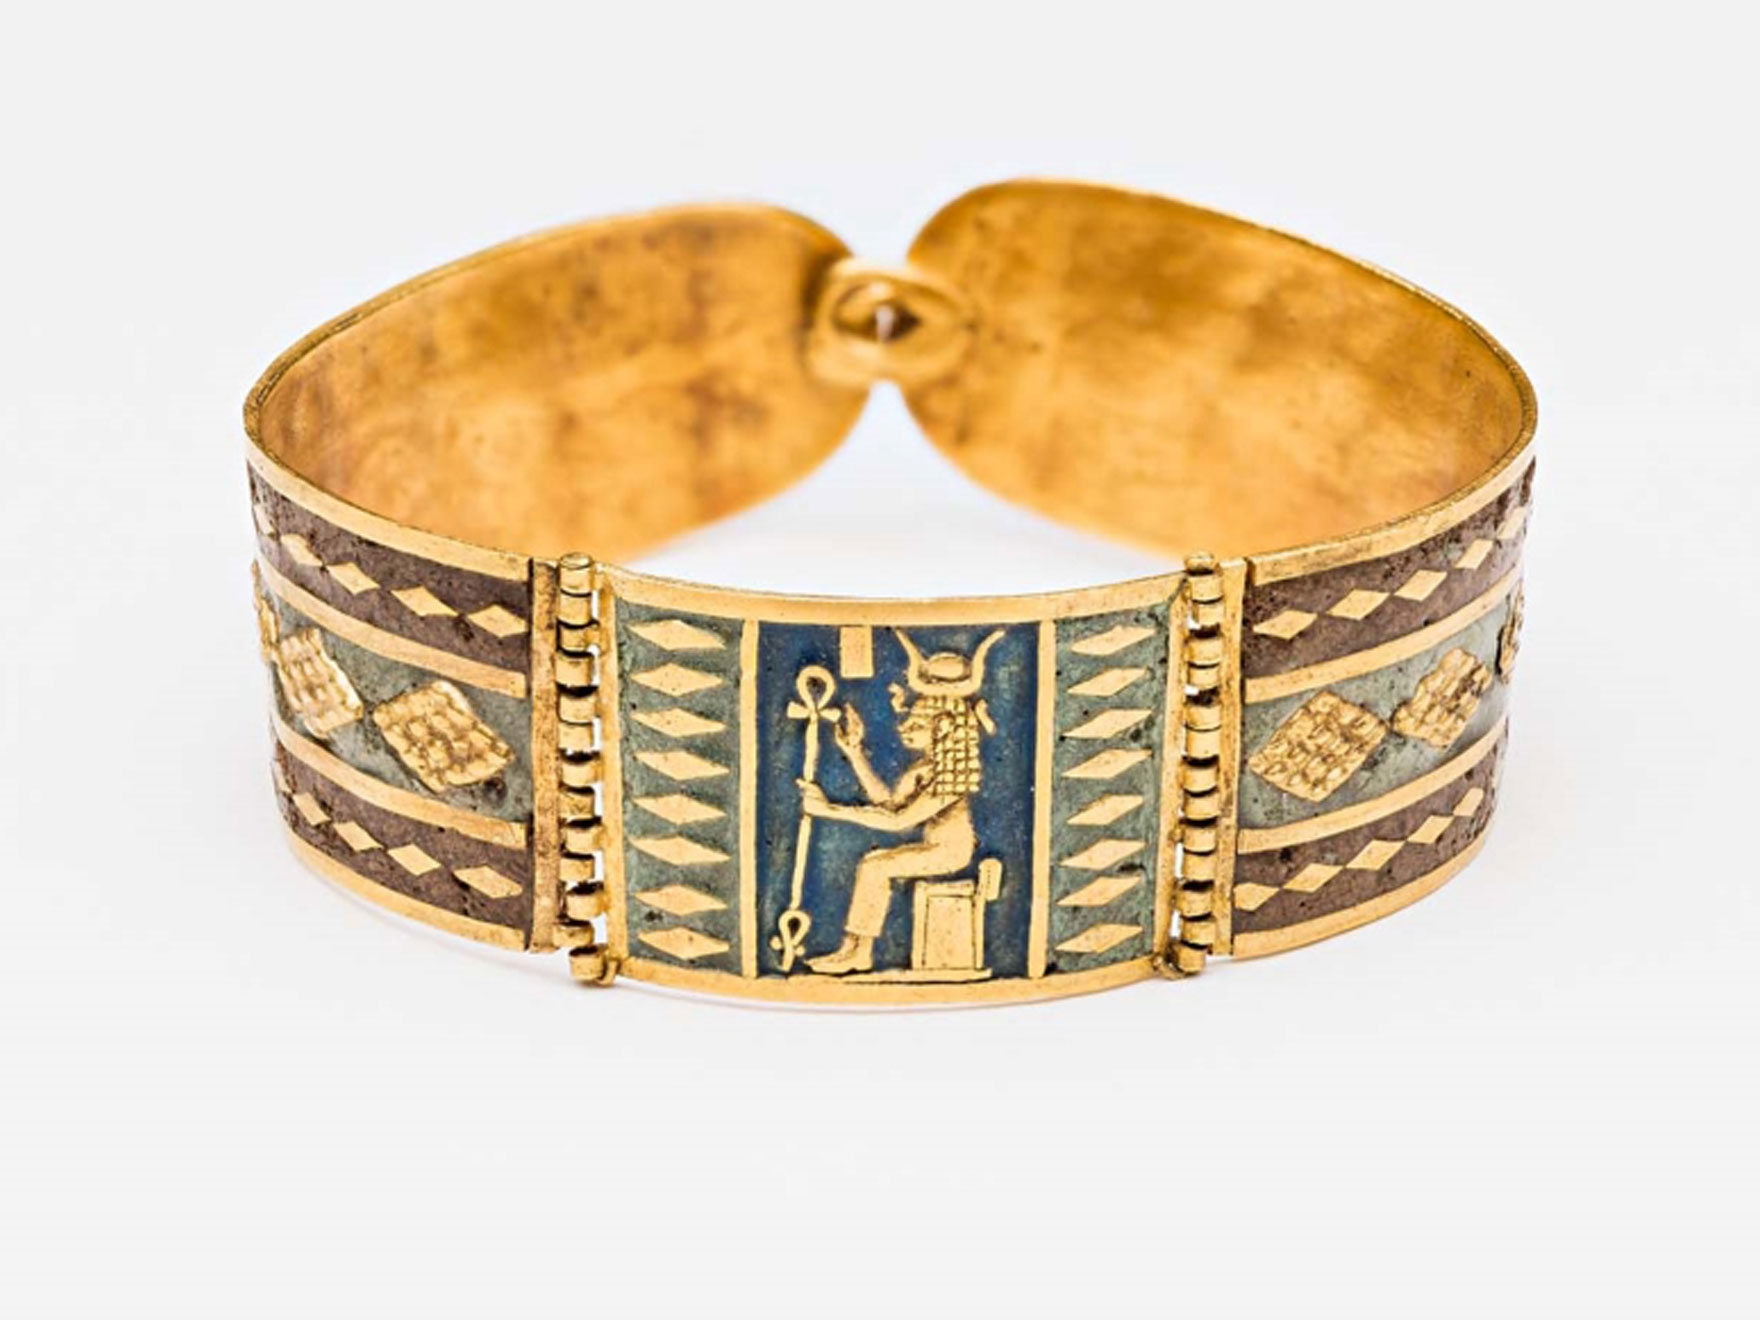 Nubian bracelet in gold and enamel depicting a seated Hathor